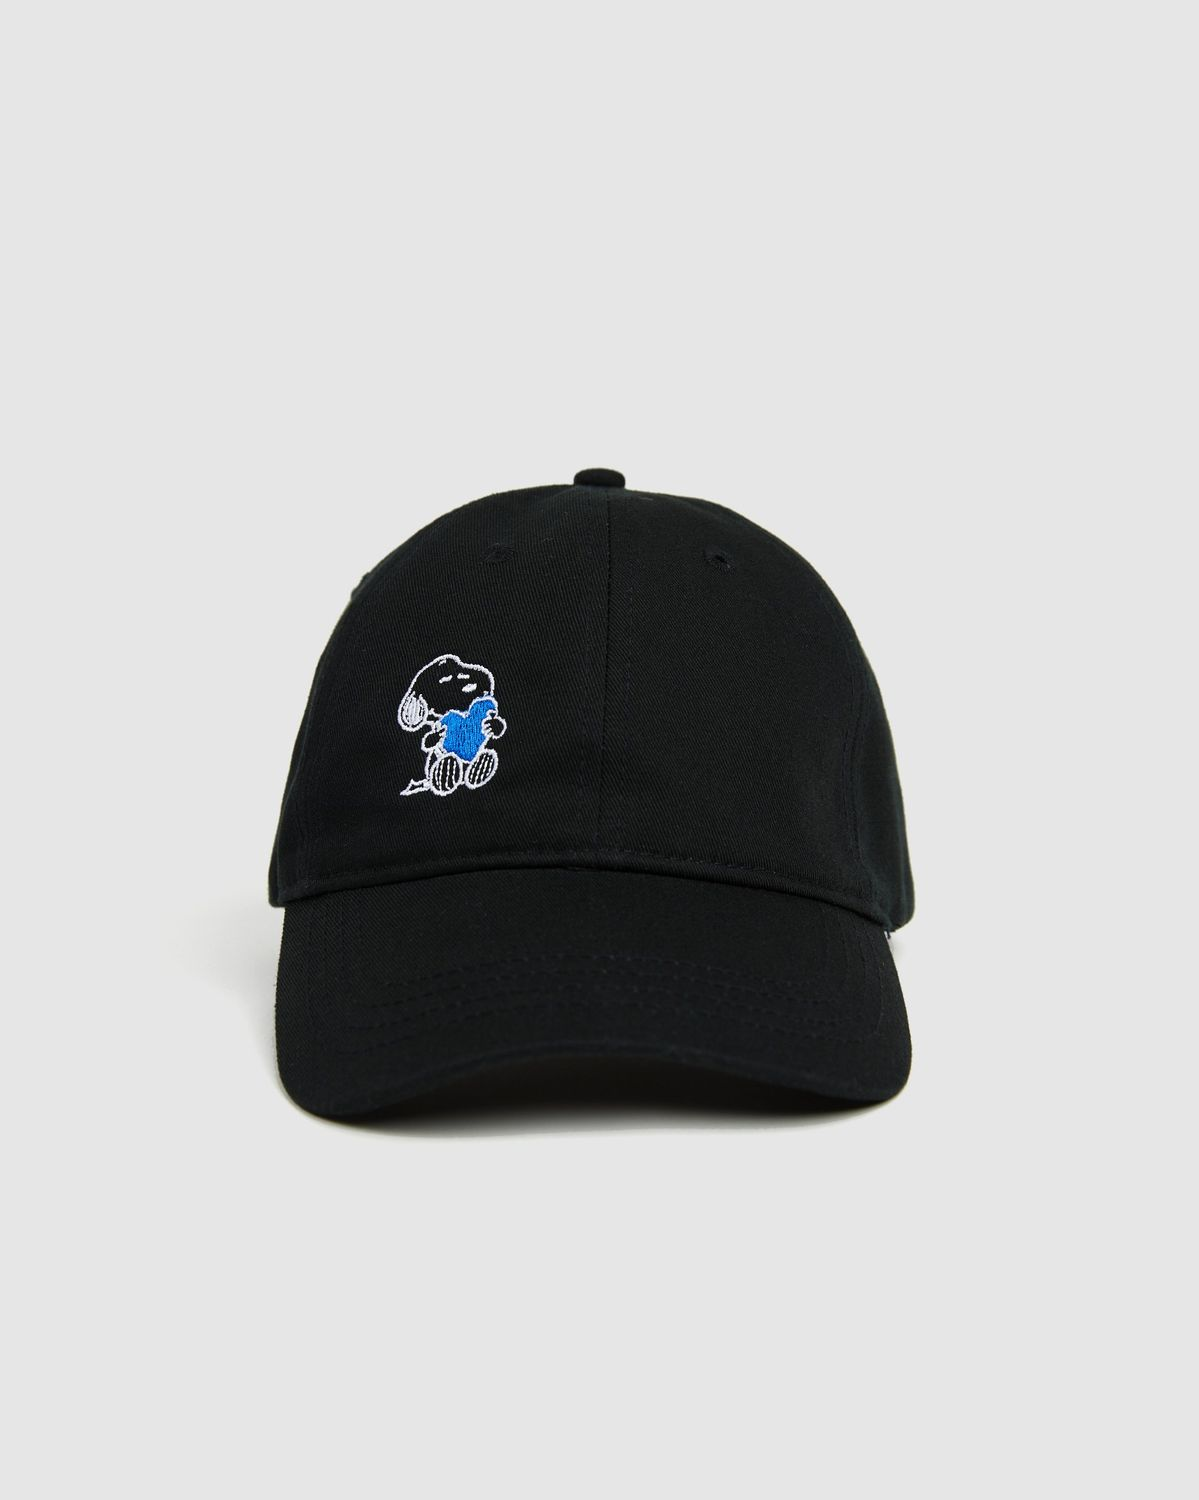 Colette Mon Amour x Soulland -  Snoopy Heart Black Baseball Cap - Image 4